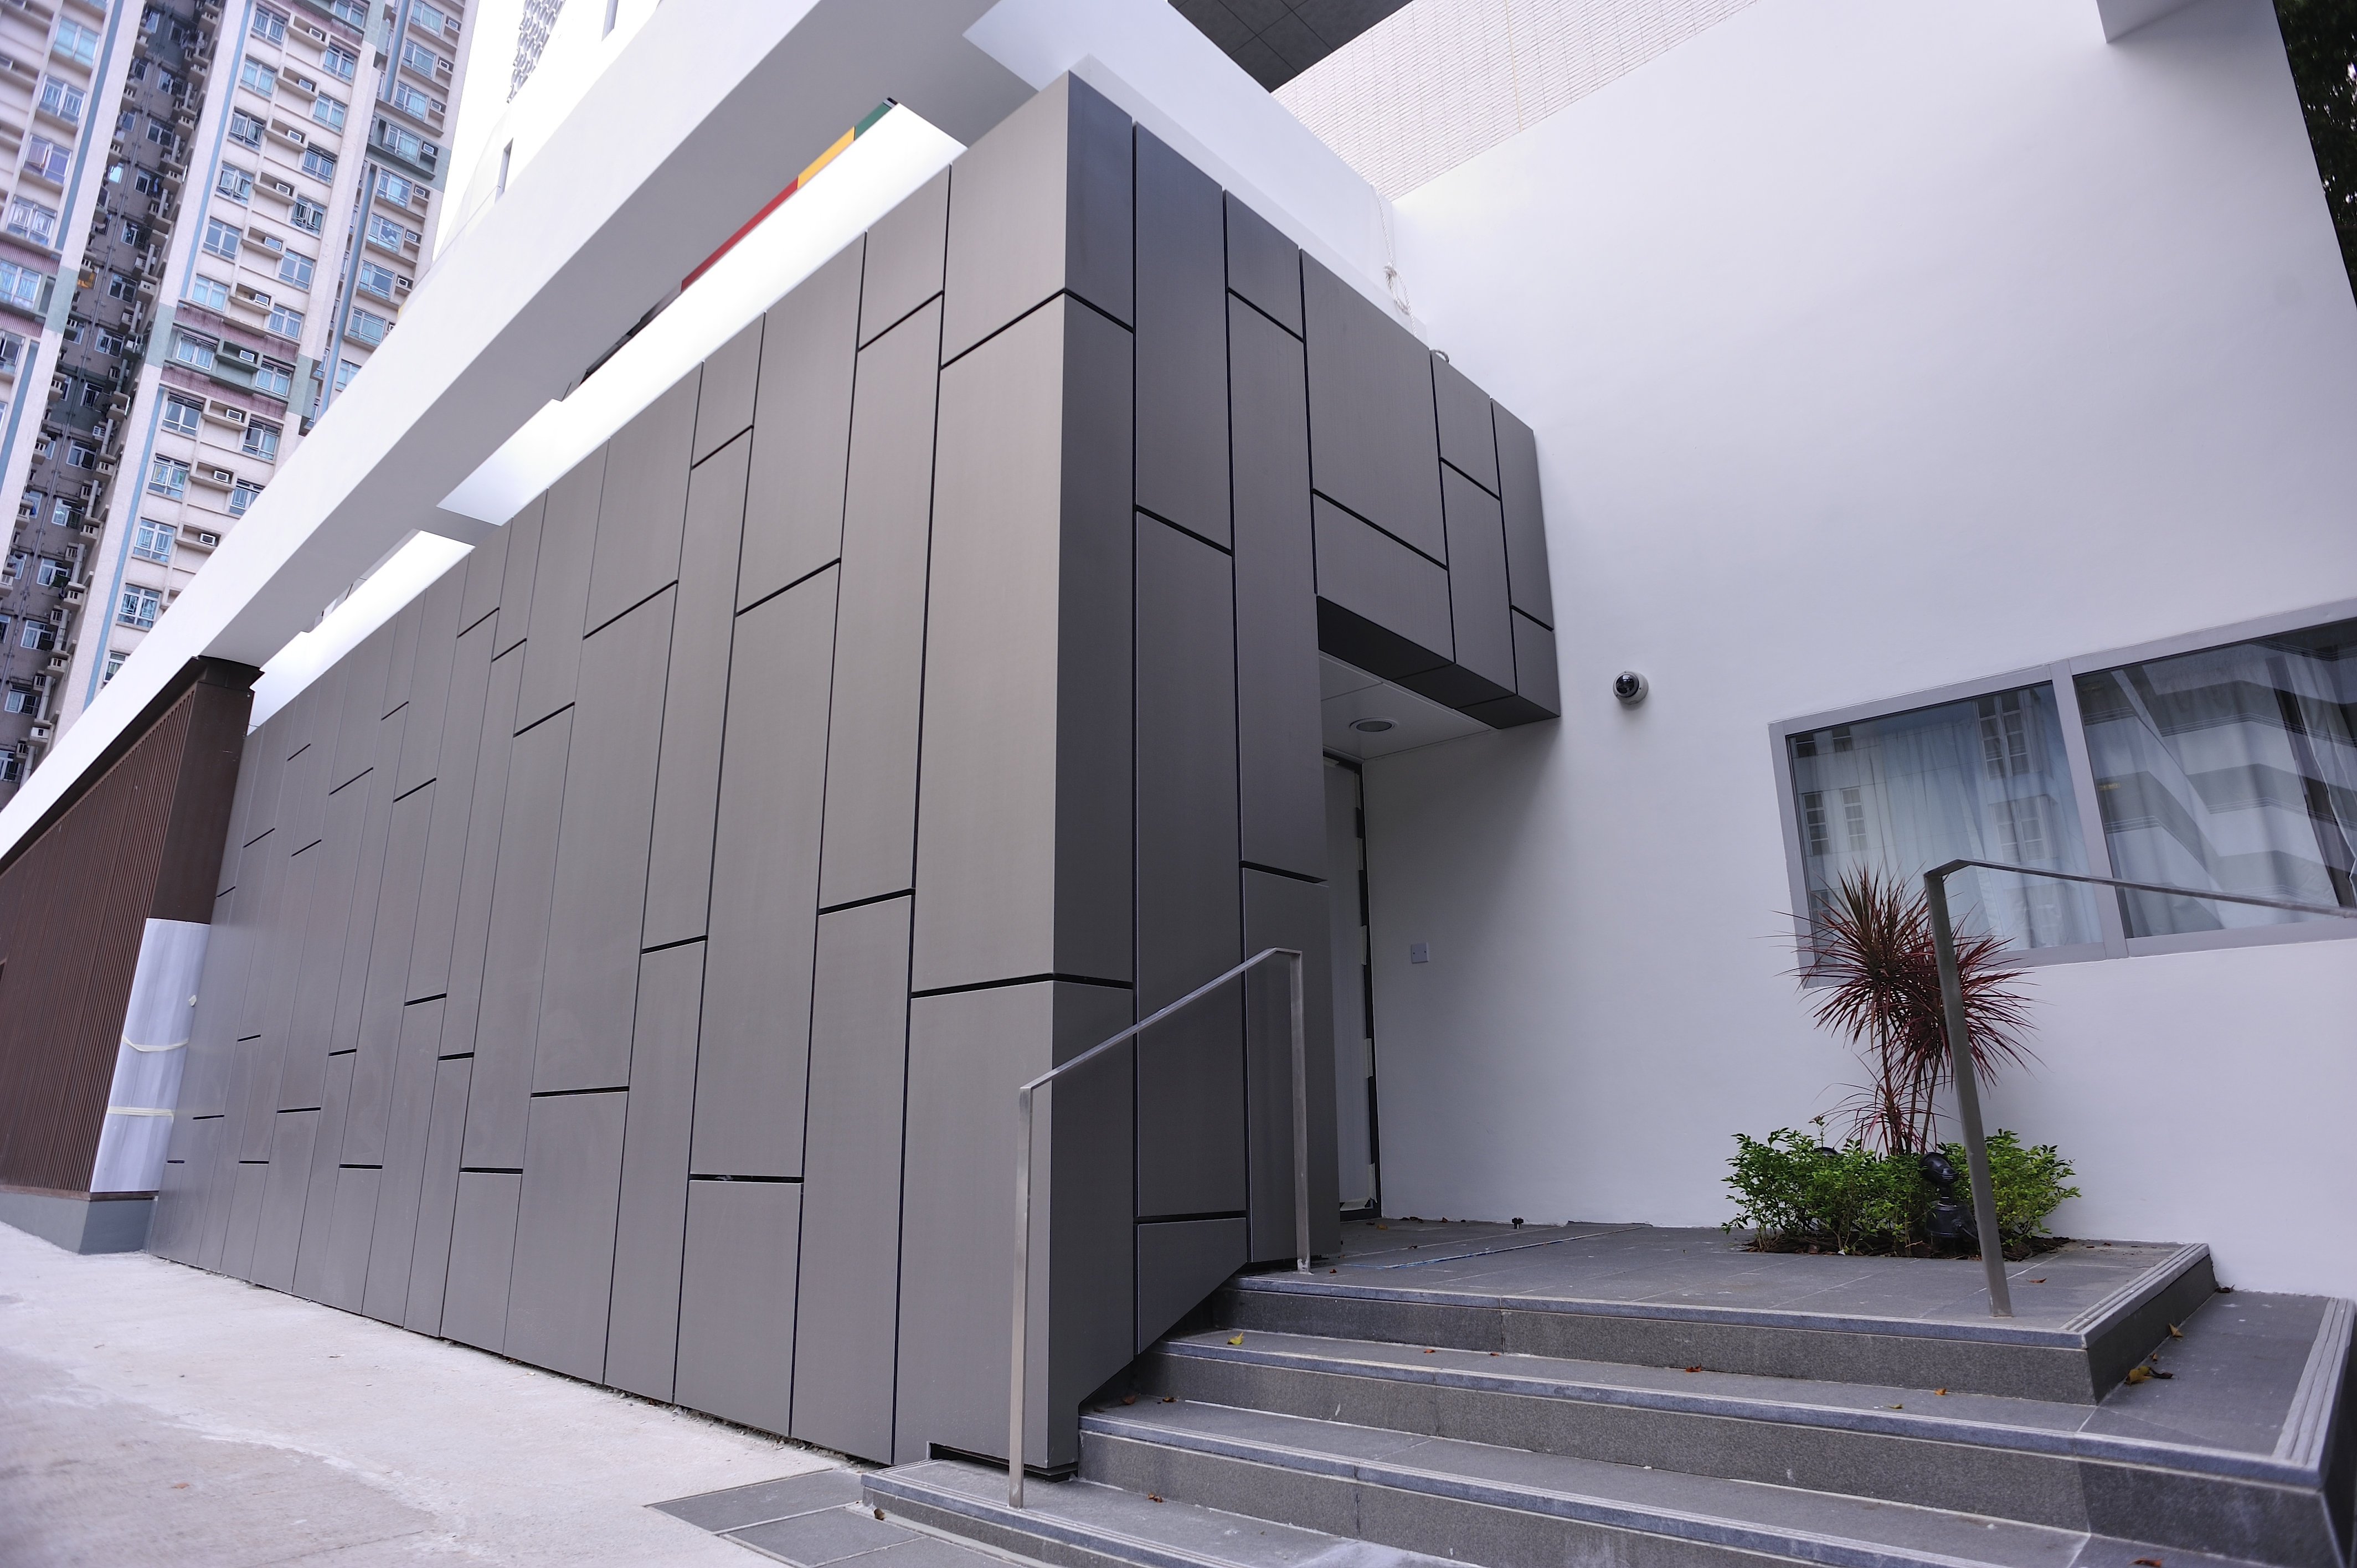 MONTATEC - metal cladding system